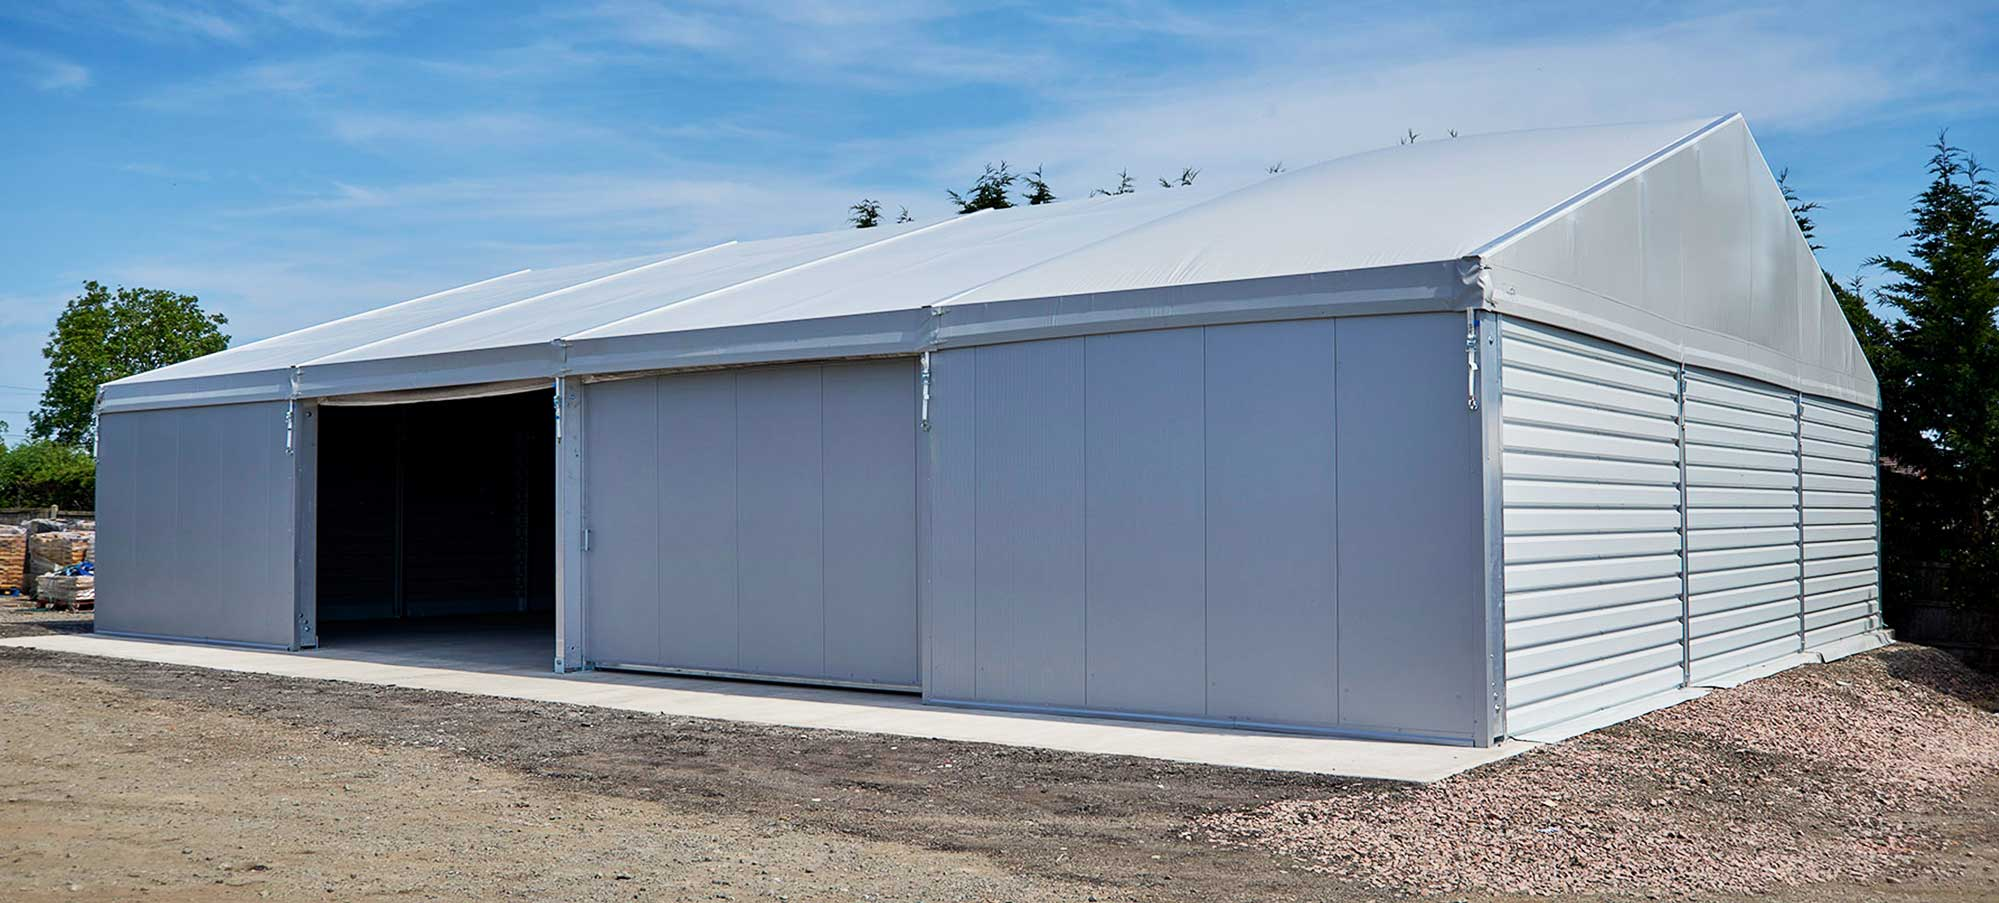 Temporary Building for Storage